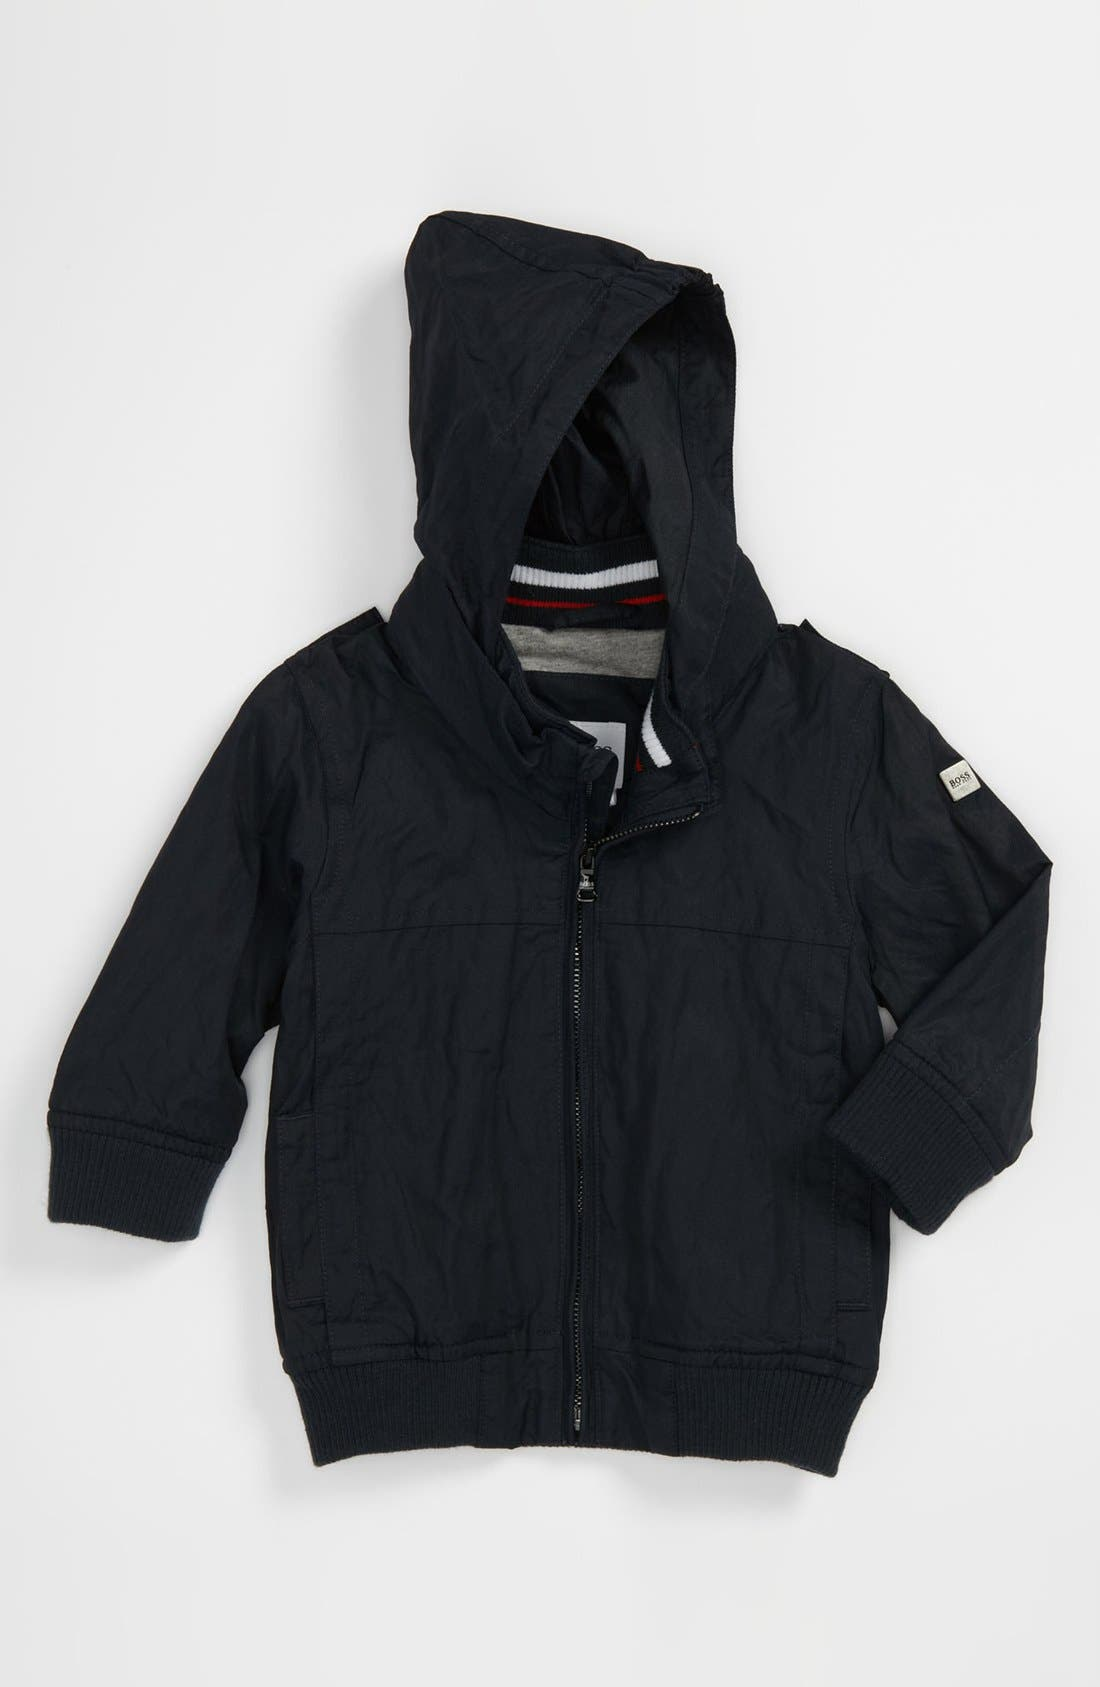 Alternate Image 1 Selected - BOSS Kidswear Twill Jacket (Toddler)